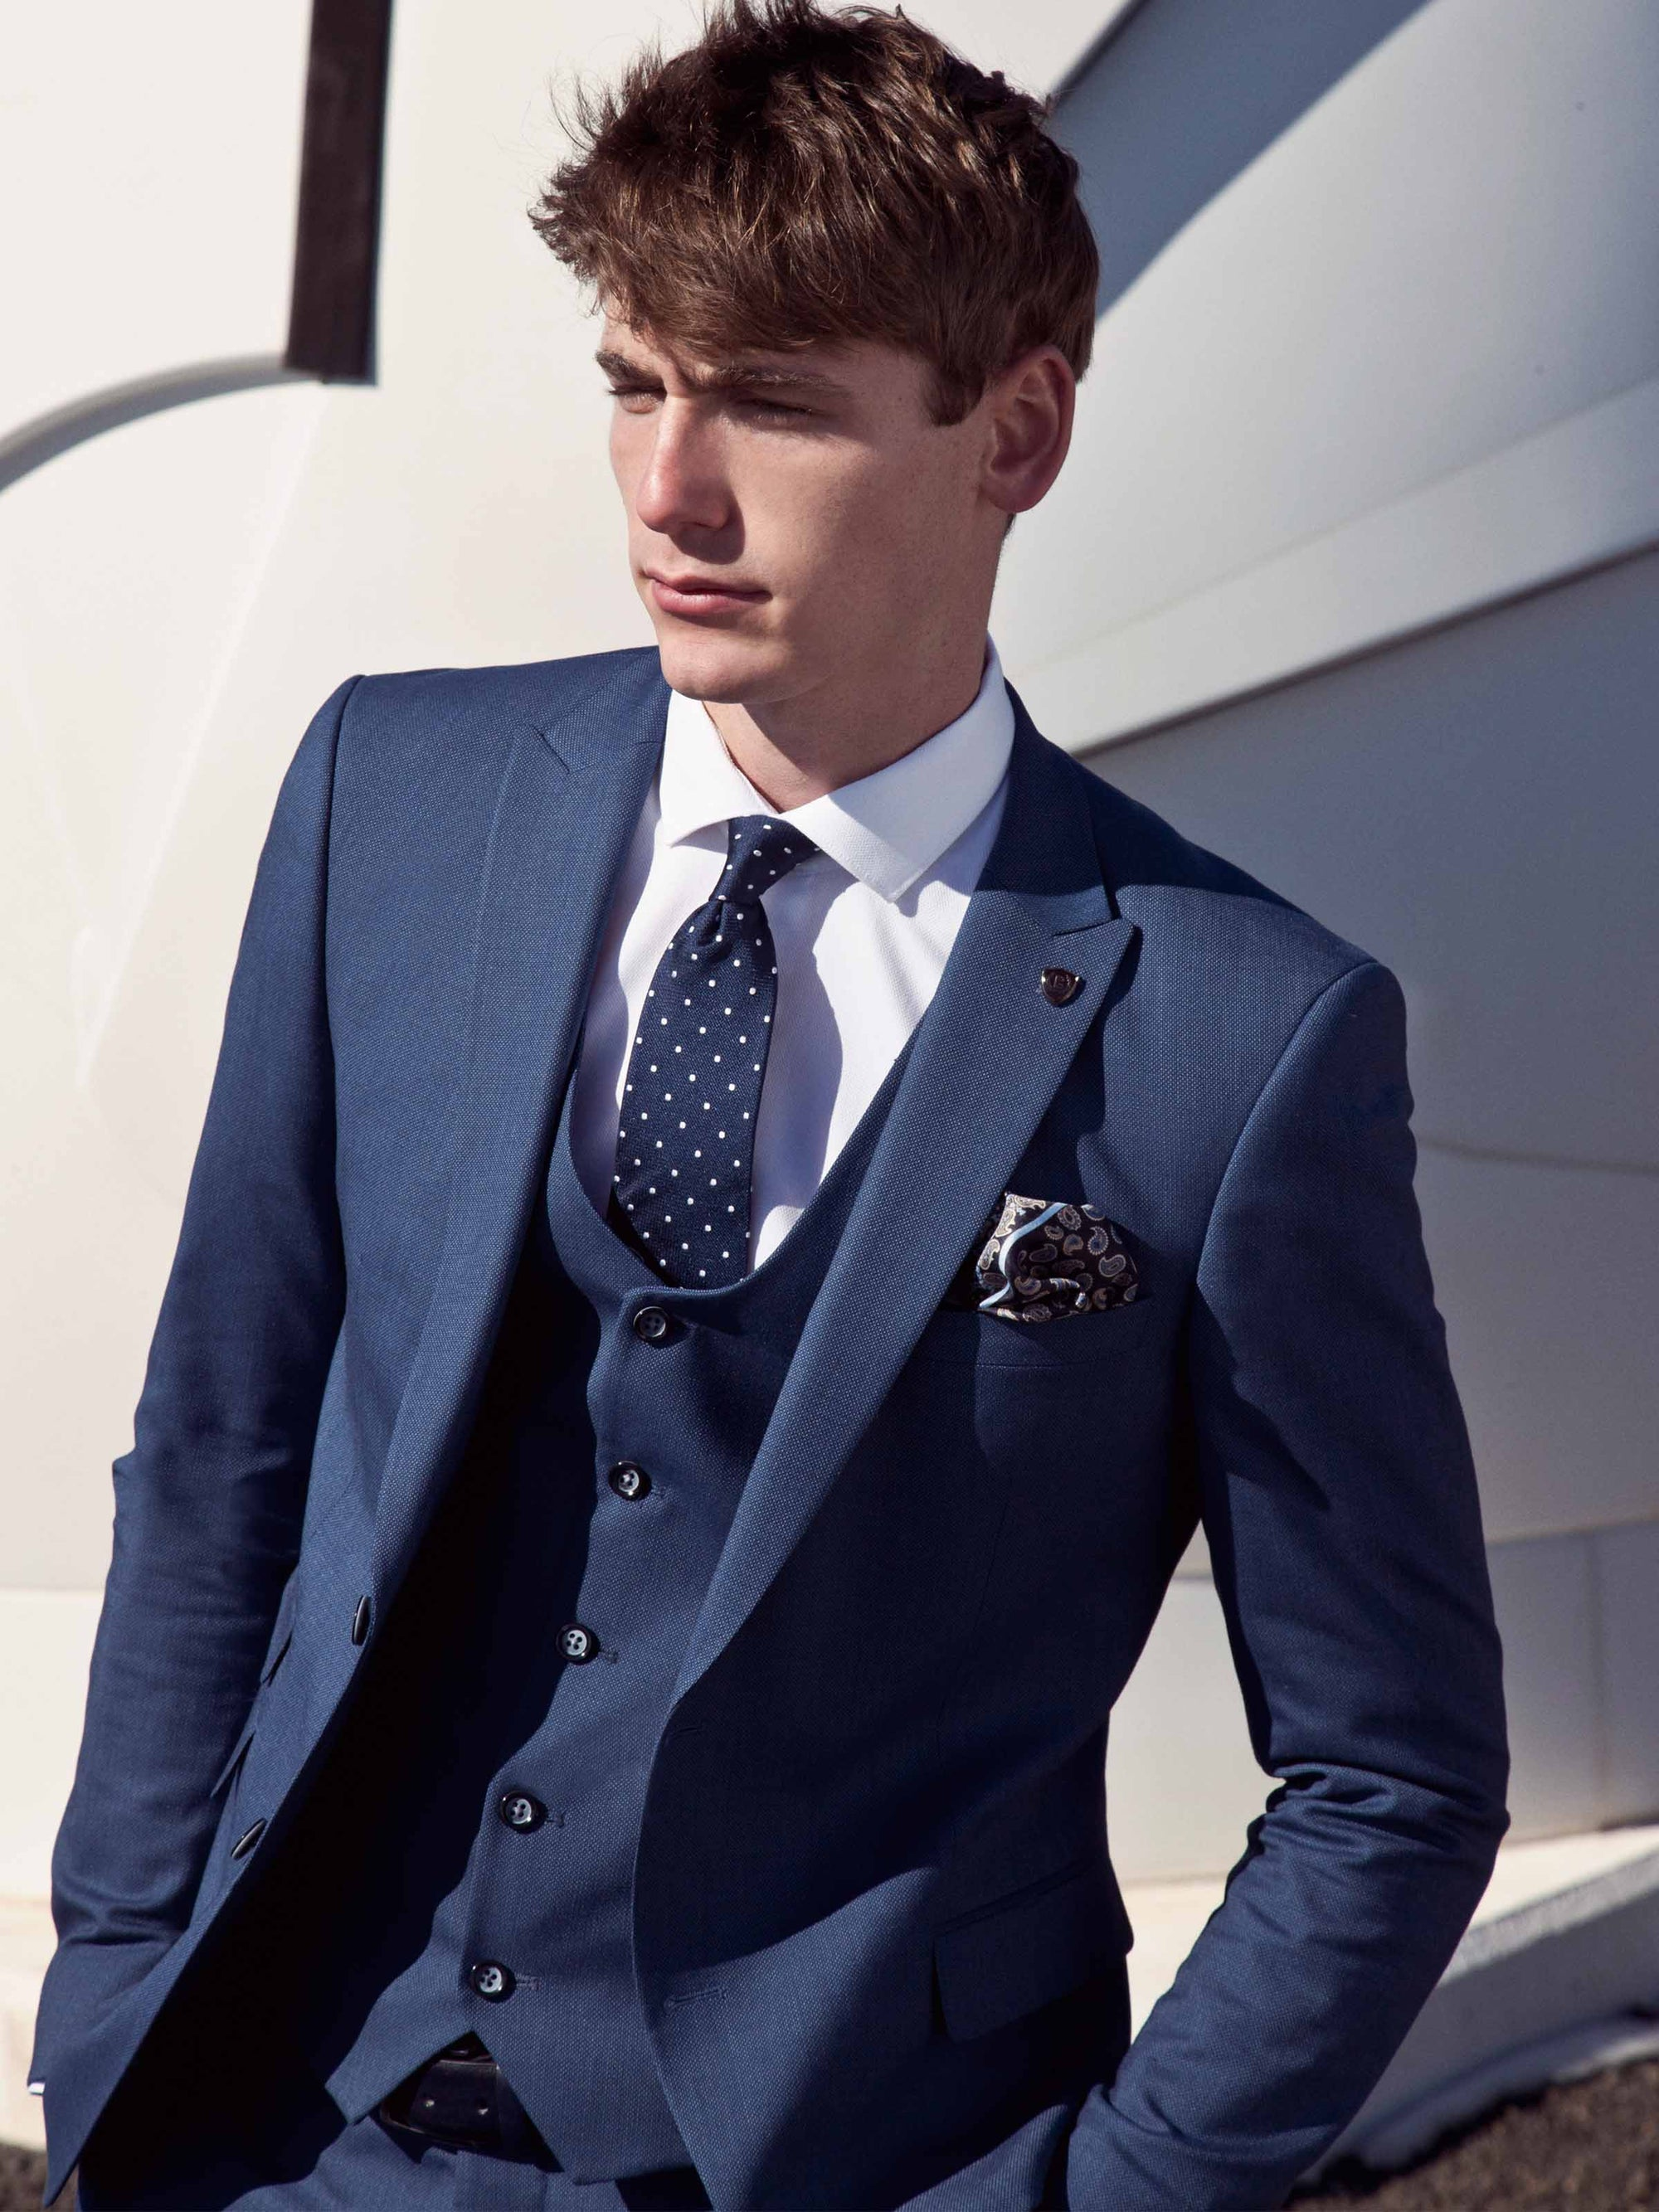 Lennon Navy Suit By Benetti